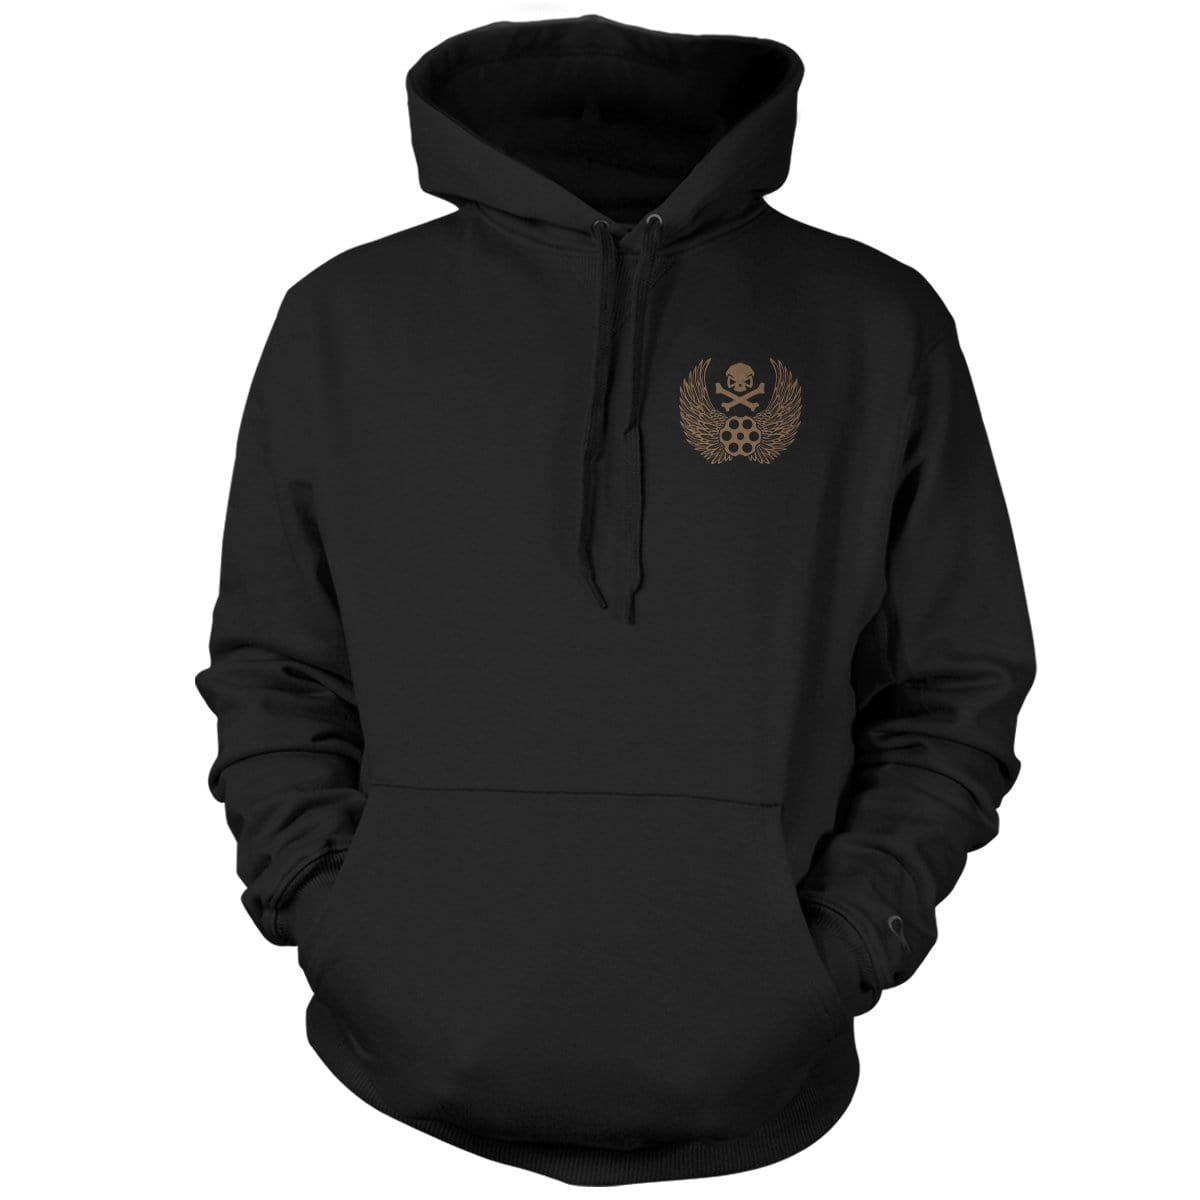 PHUMC Peacemakers Chapter Hoodie - Pipe Hitters Union